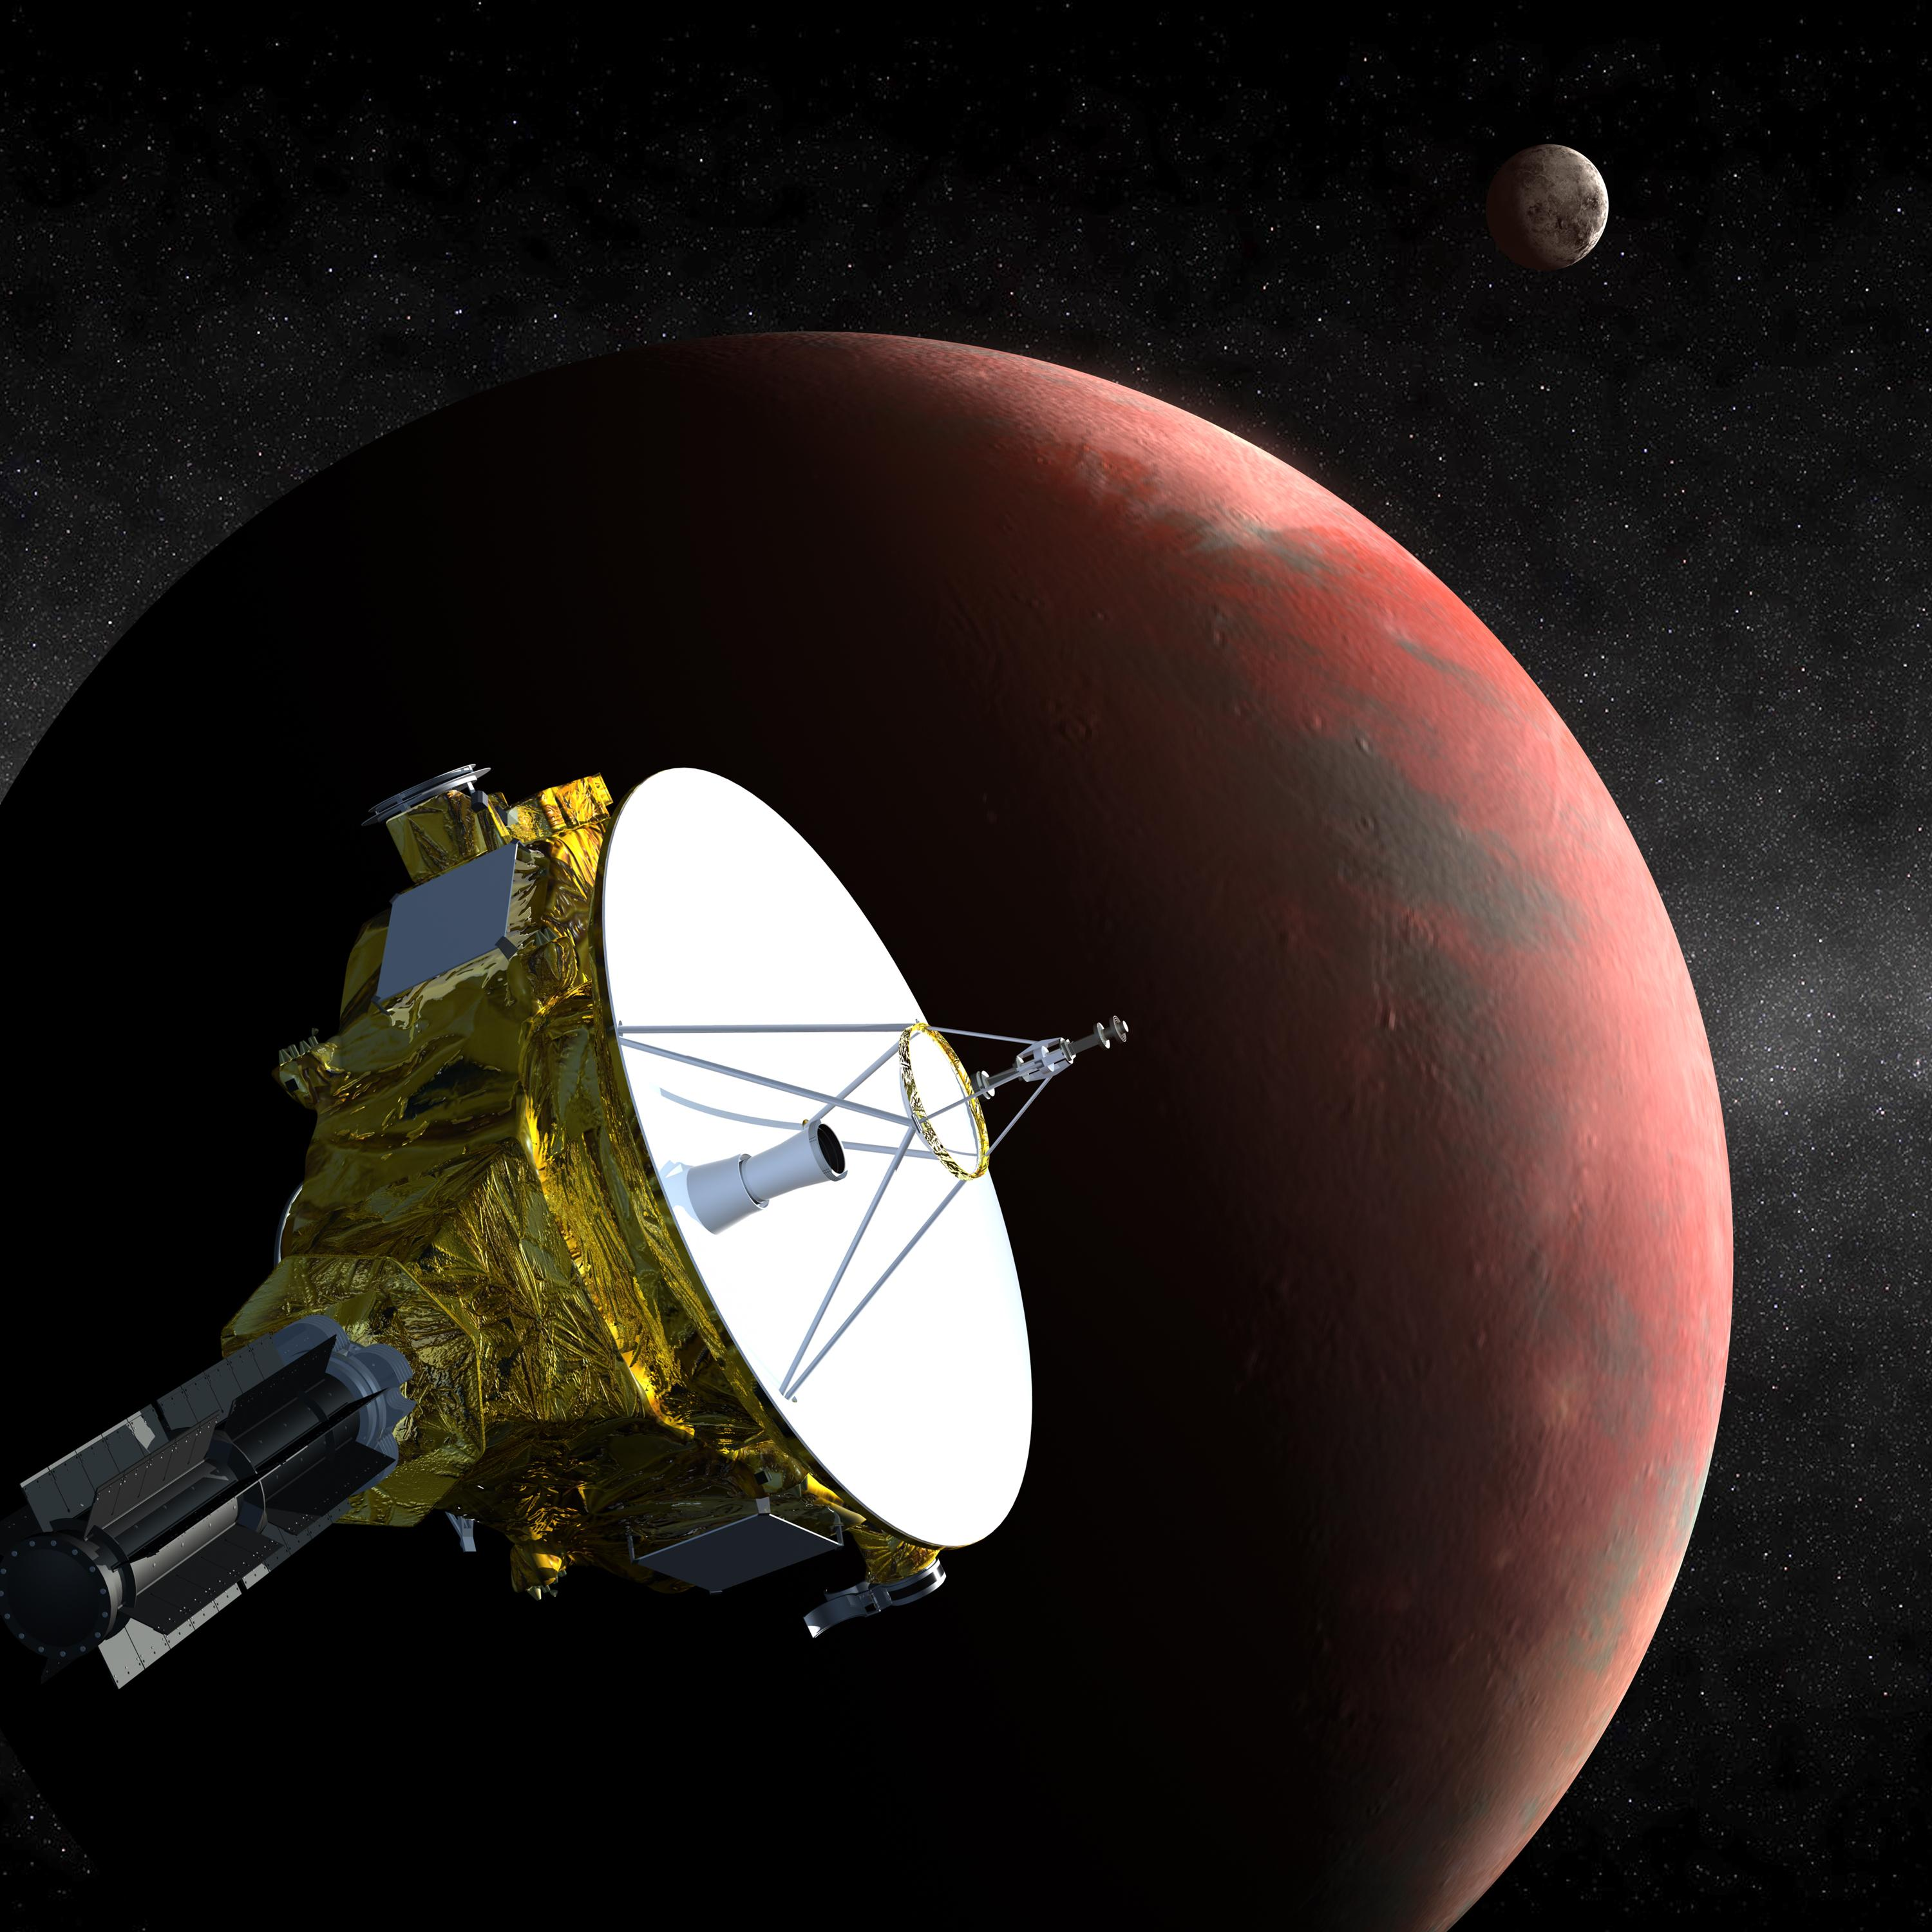 An artist's impression of the New Horizons spacecraft at Pluto in 2015.